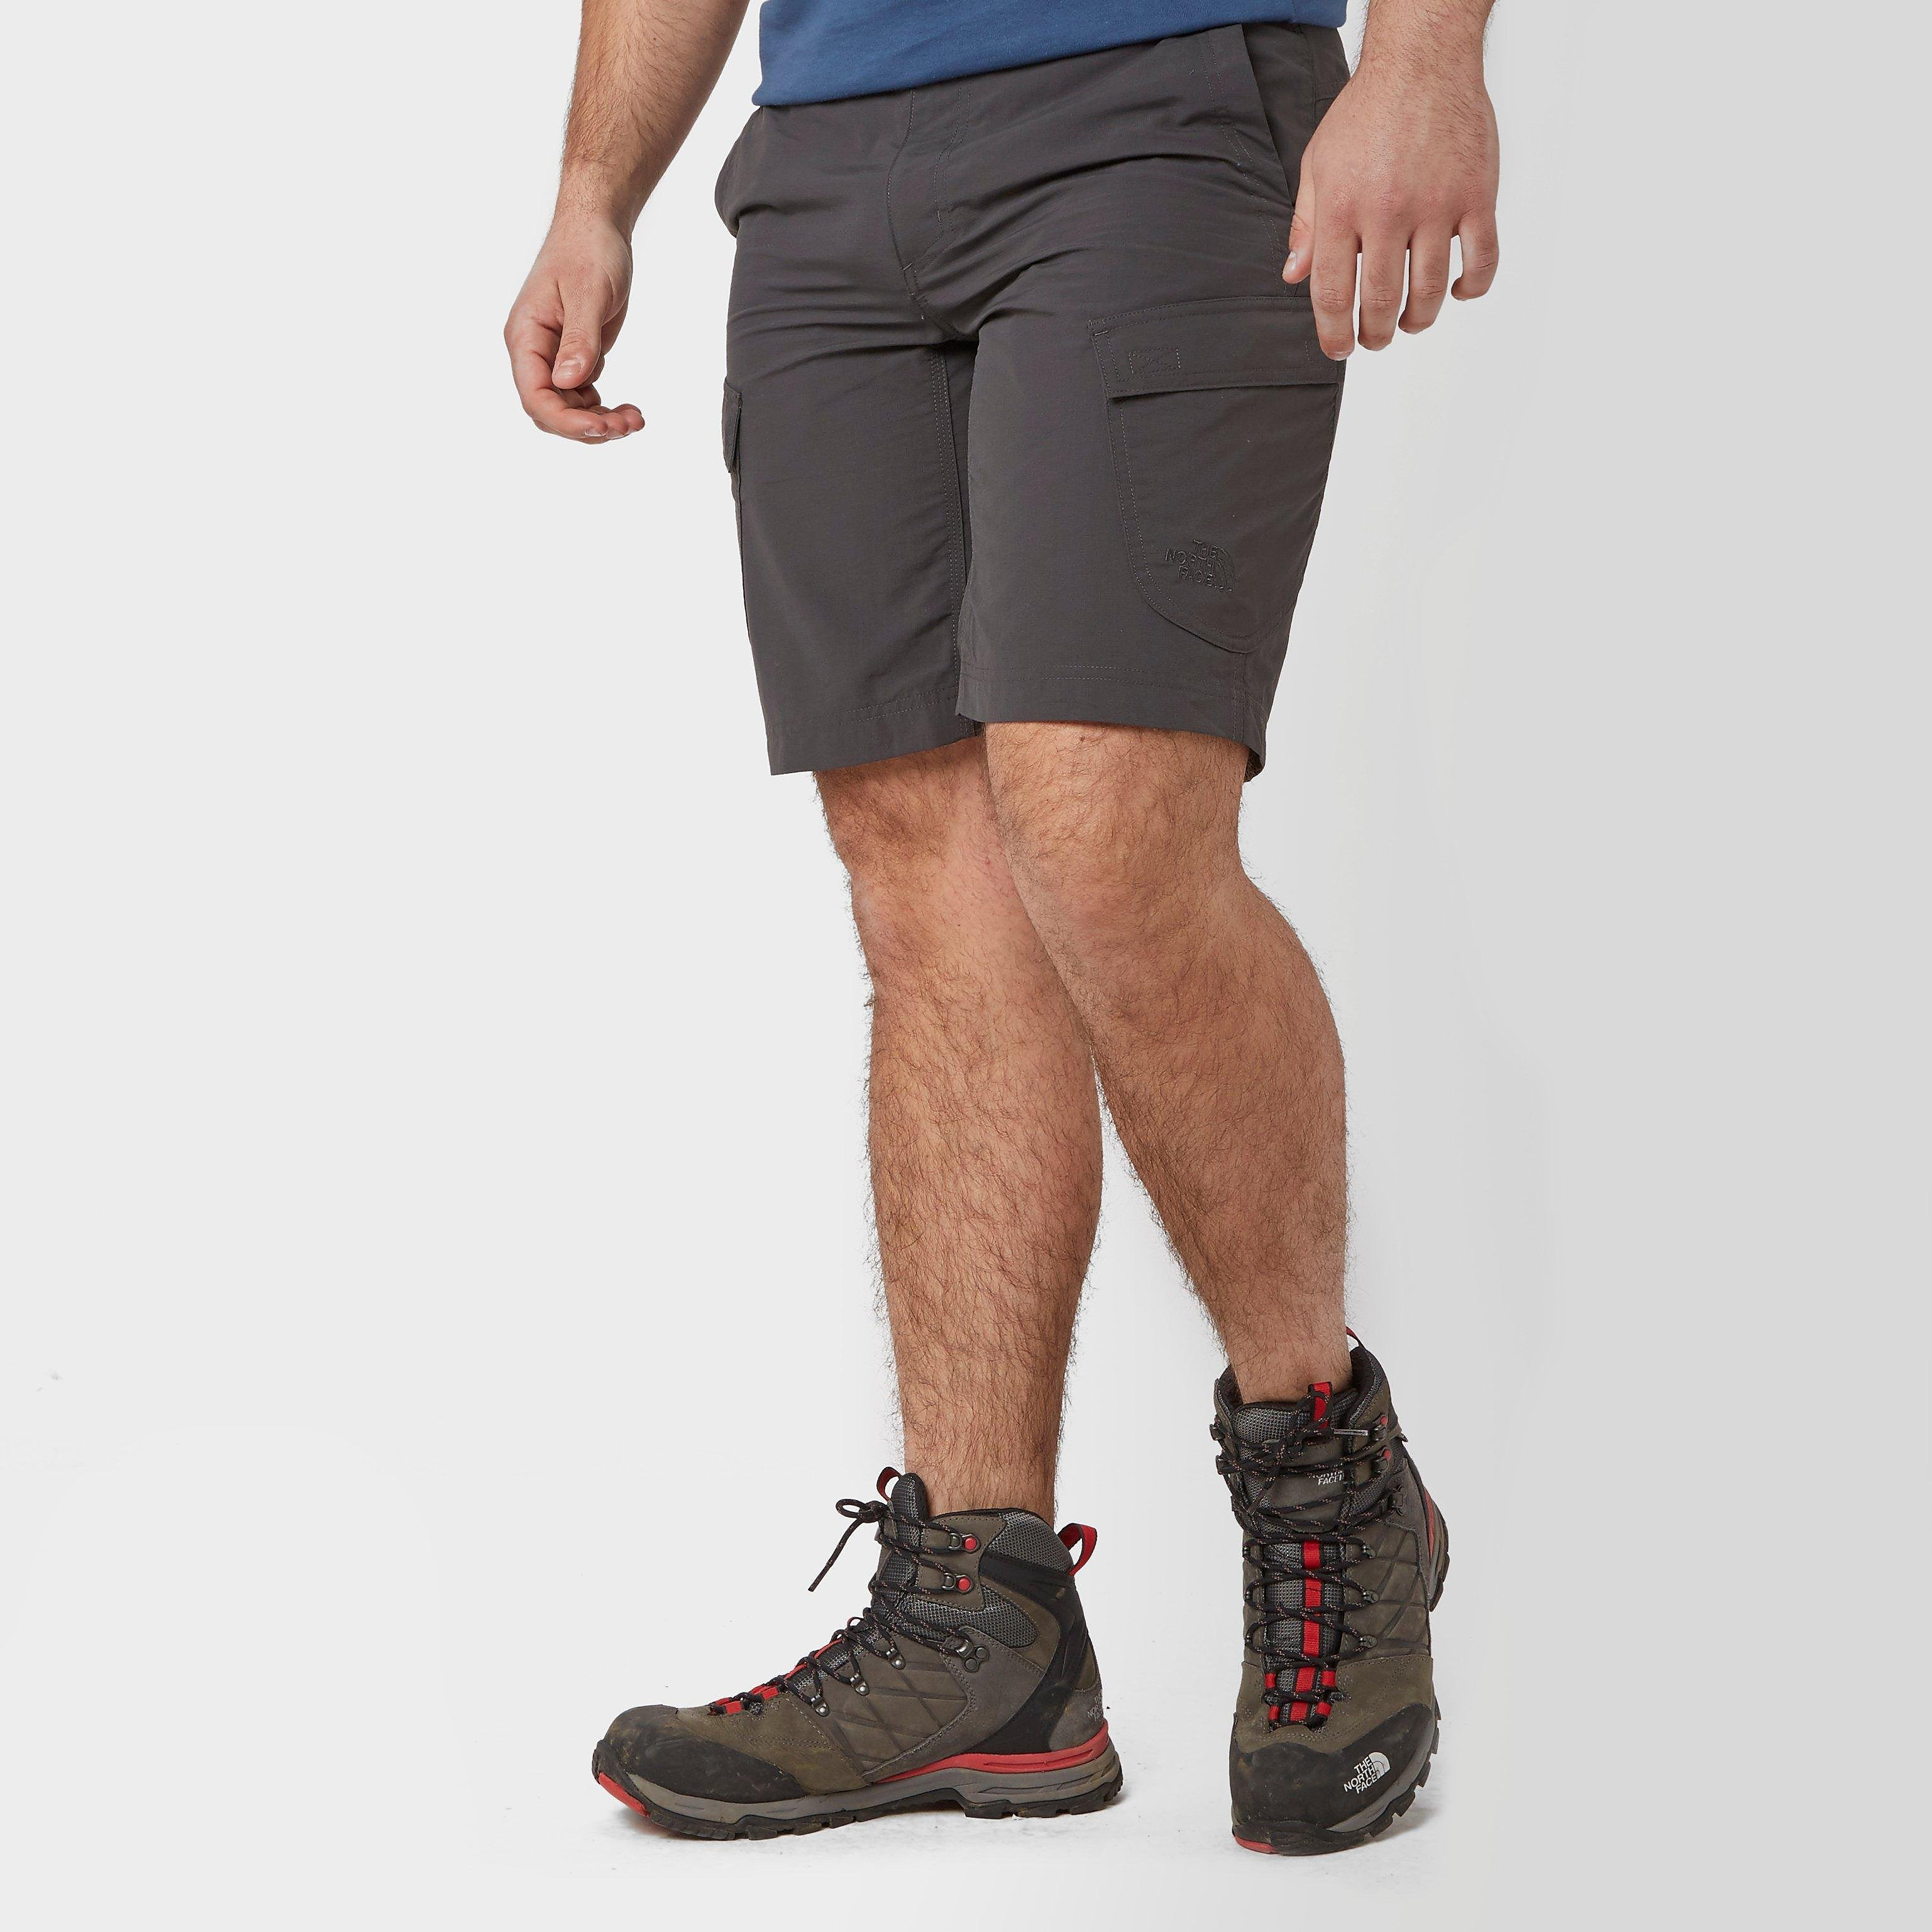 The North Face Horizon Peak Cargo Men's Shorts